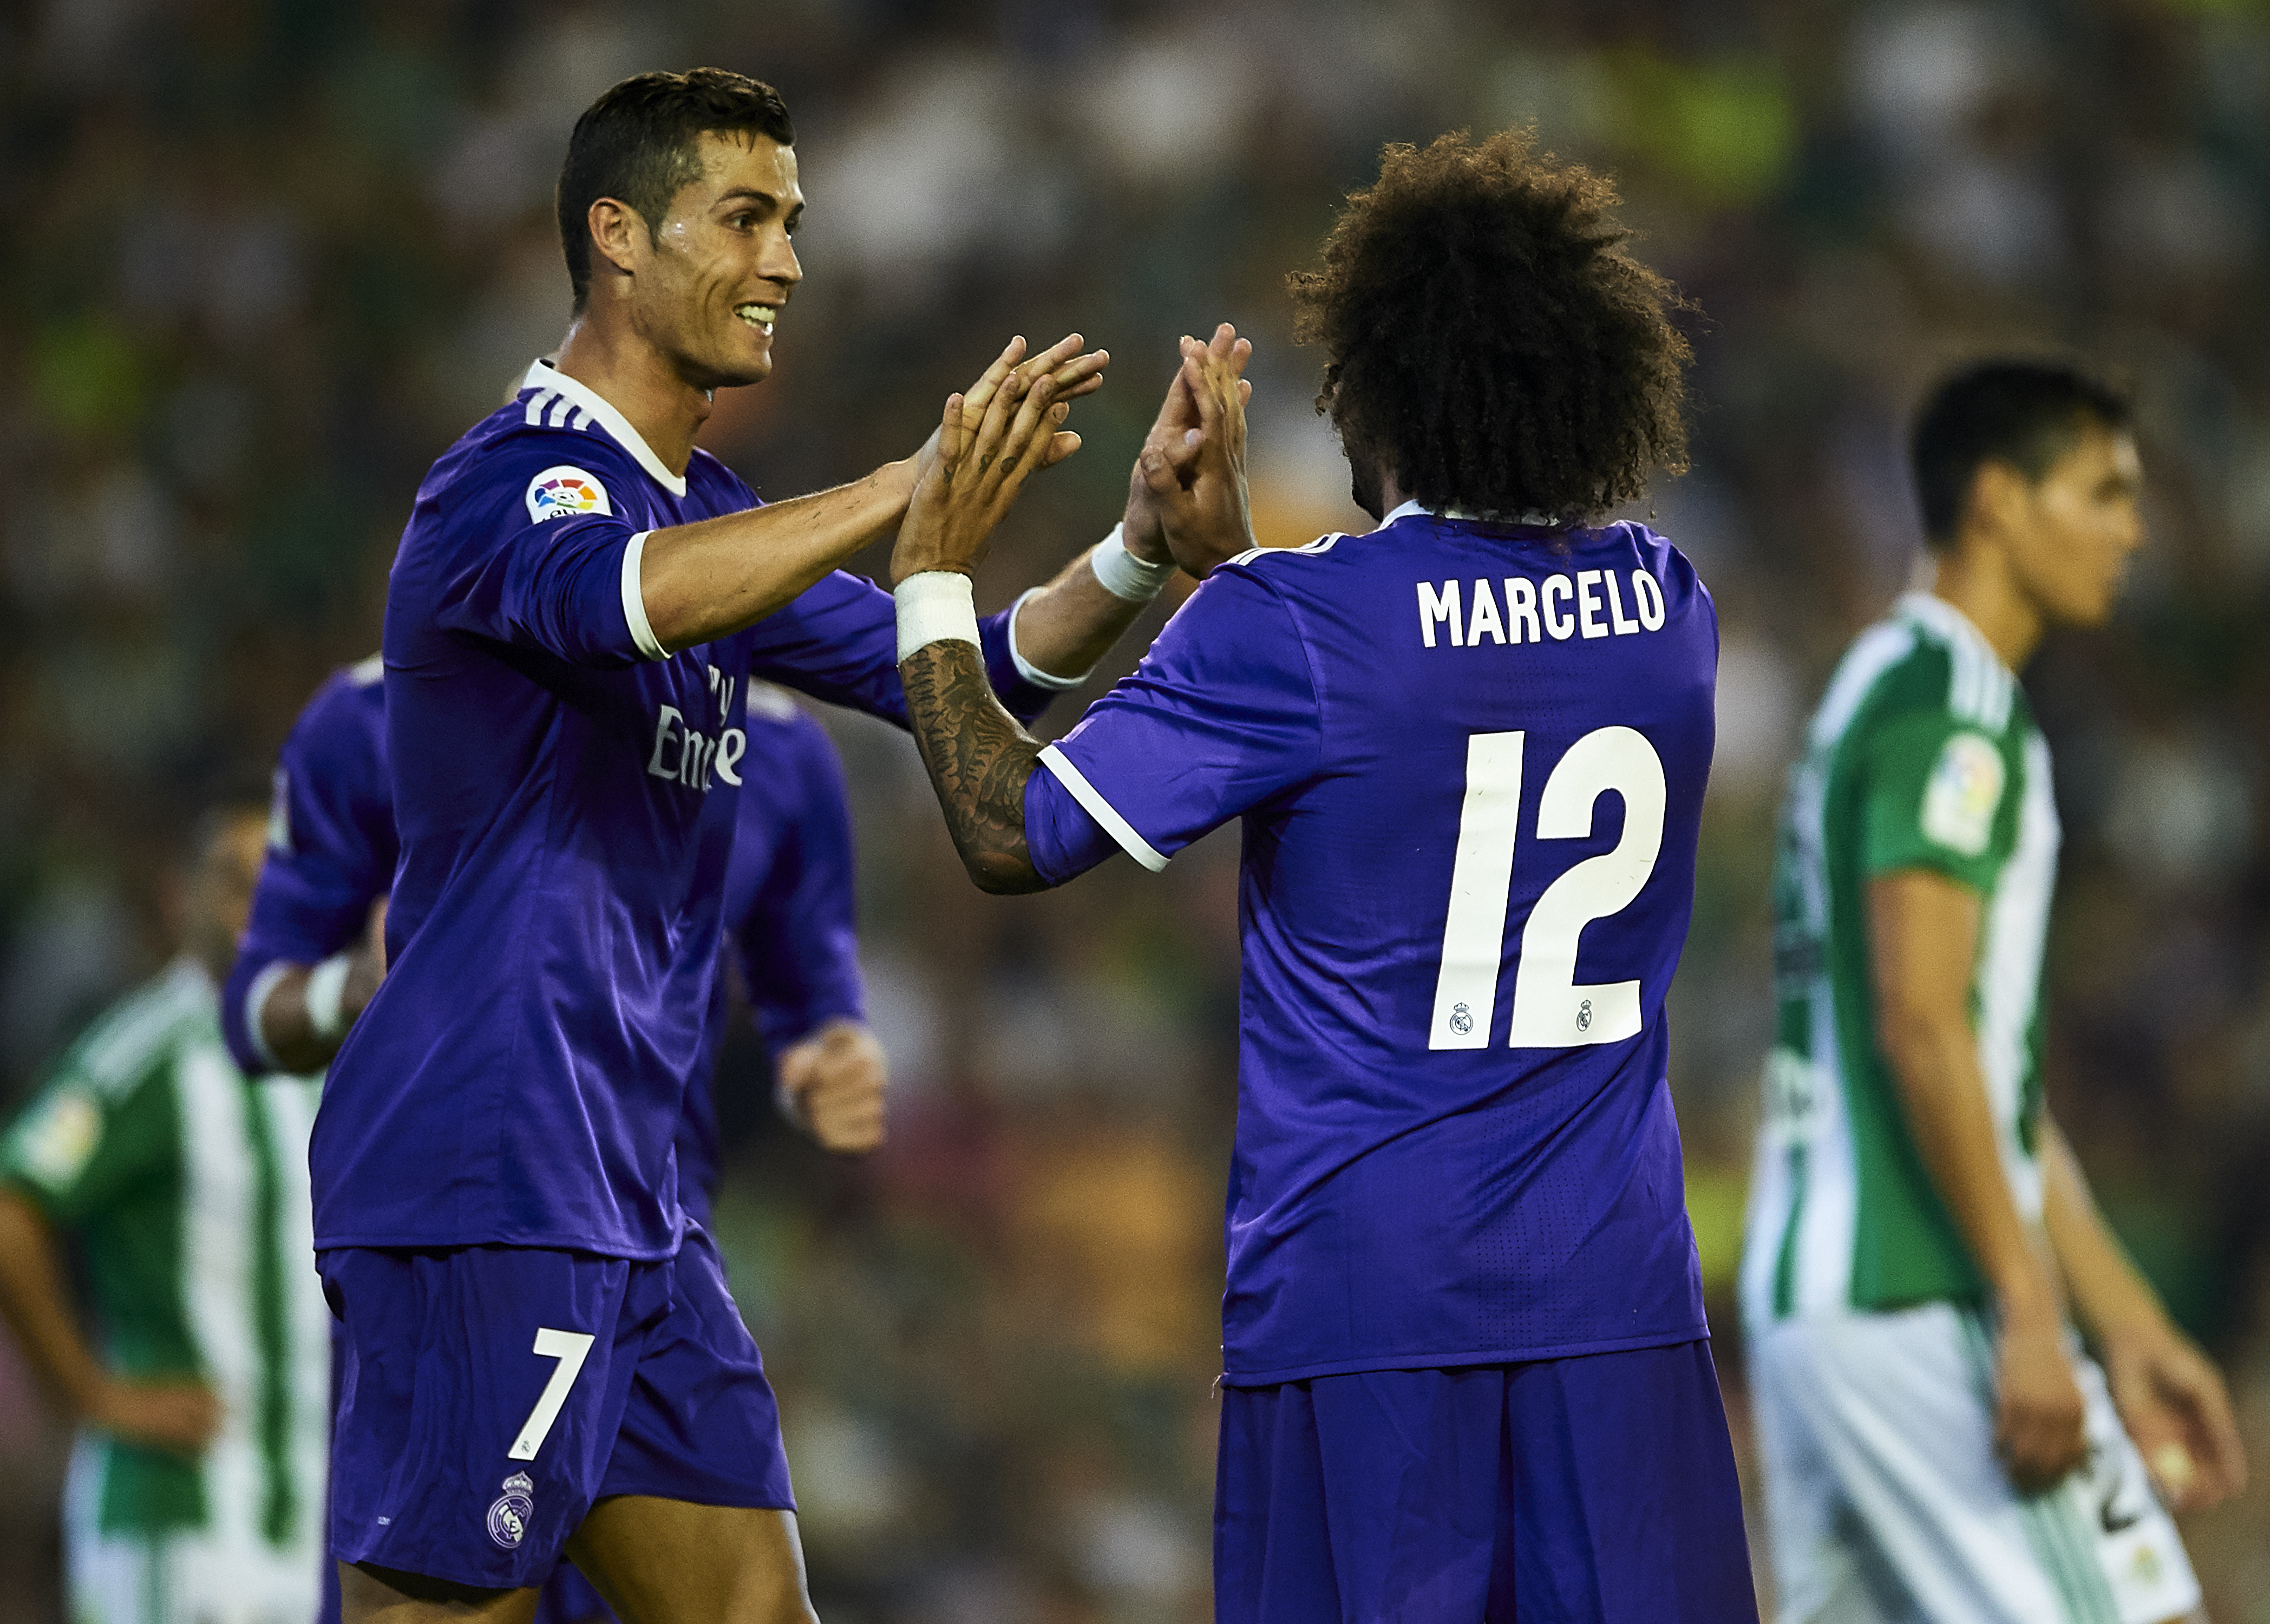 SEVILLE, SPAIN - OCTOBER 15: Marcelo (R) and Cristiano Ronaldo of Real Madrid CF celebrates after scoring during the match between Real Betis Balompie and Real Madrid CF as part of La Liga at Benito Villamrin stadium October 15, 2016 in Seville, Spain. (Photo by Aitor Alcalde/Getty Images)